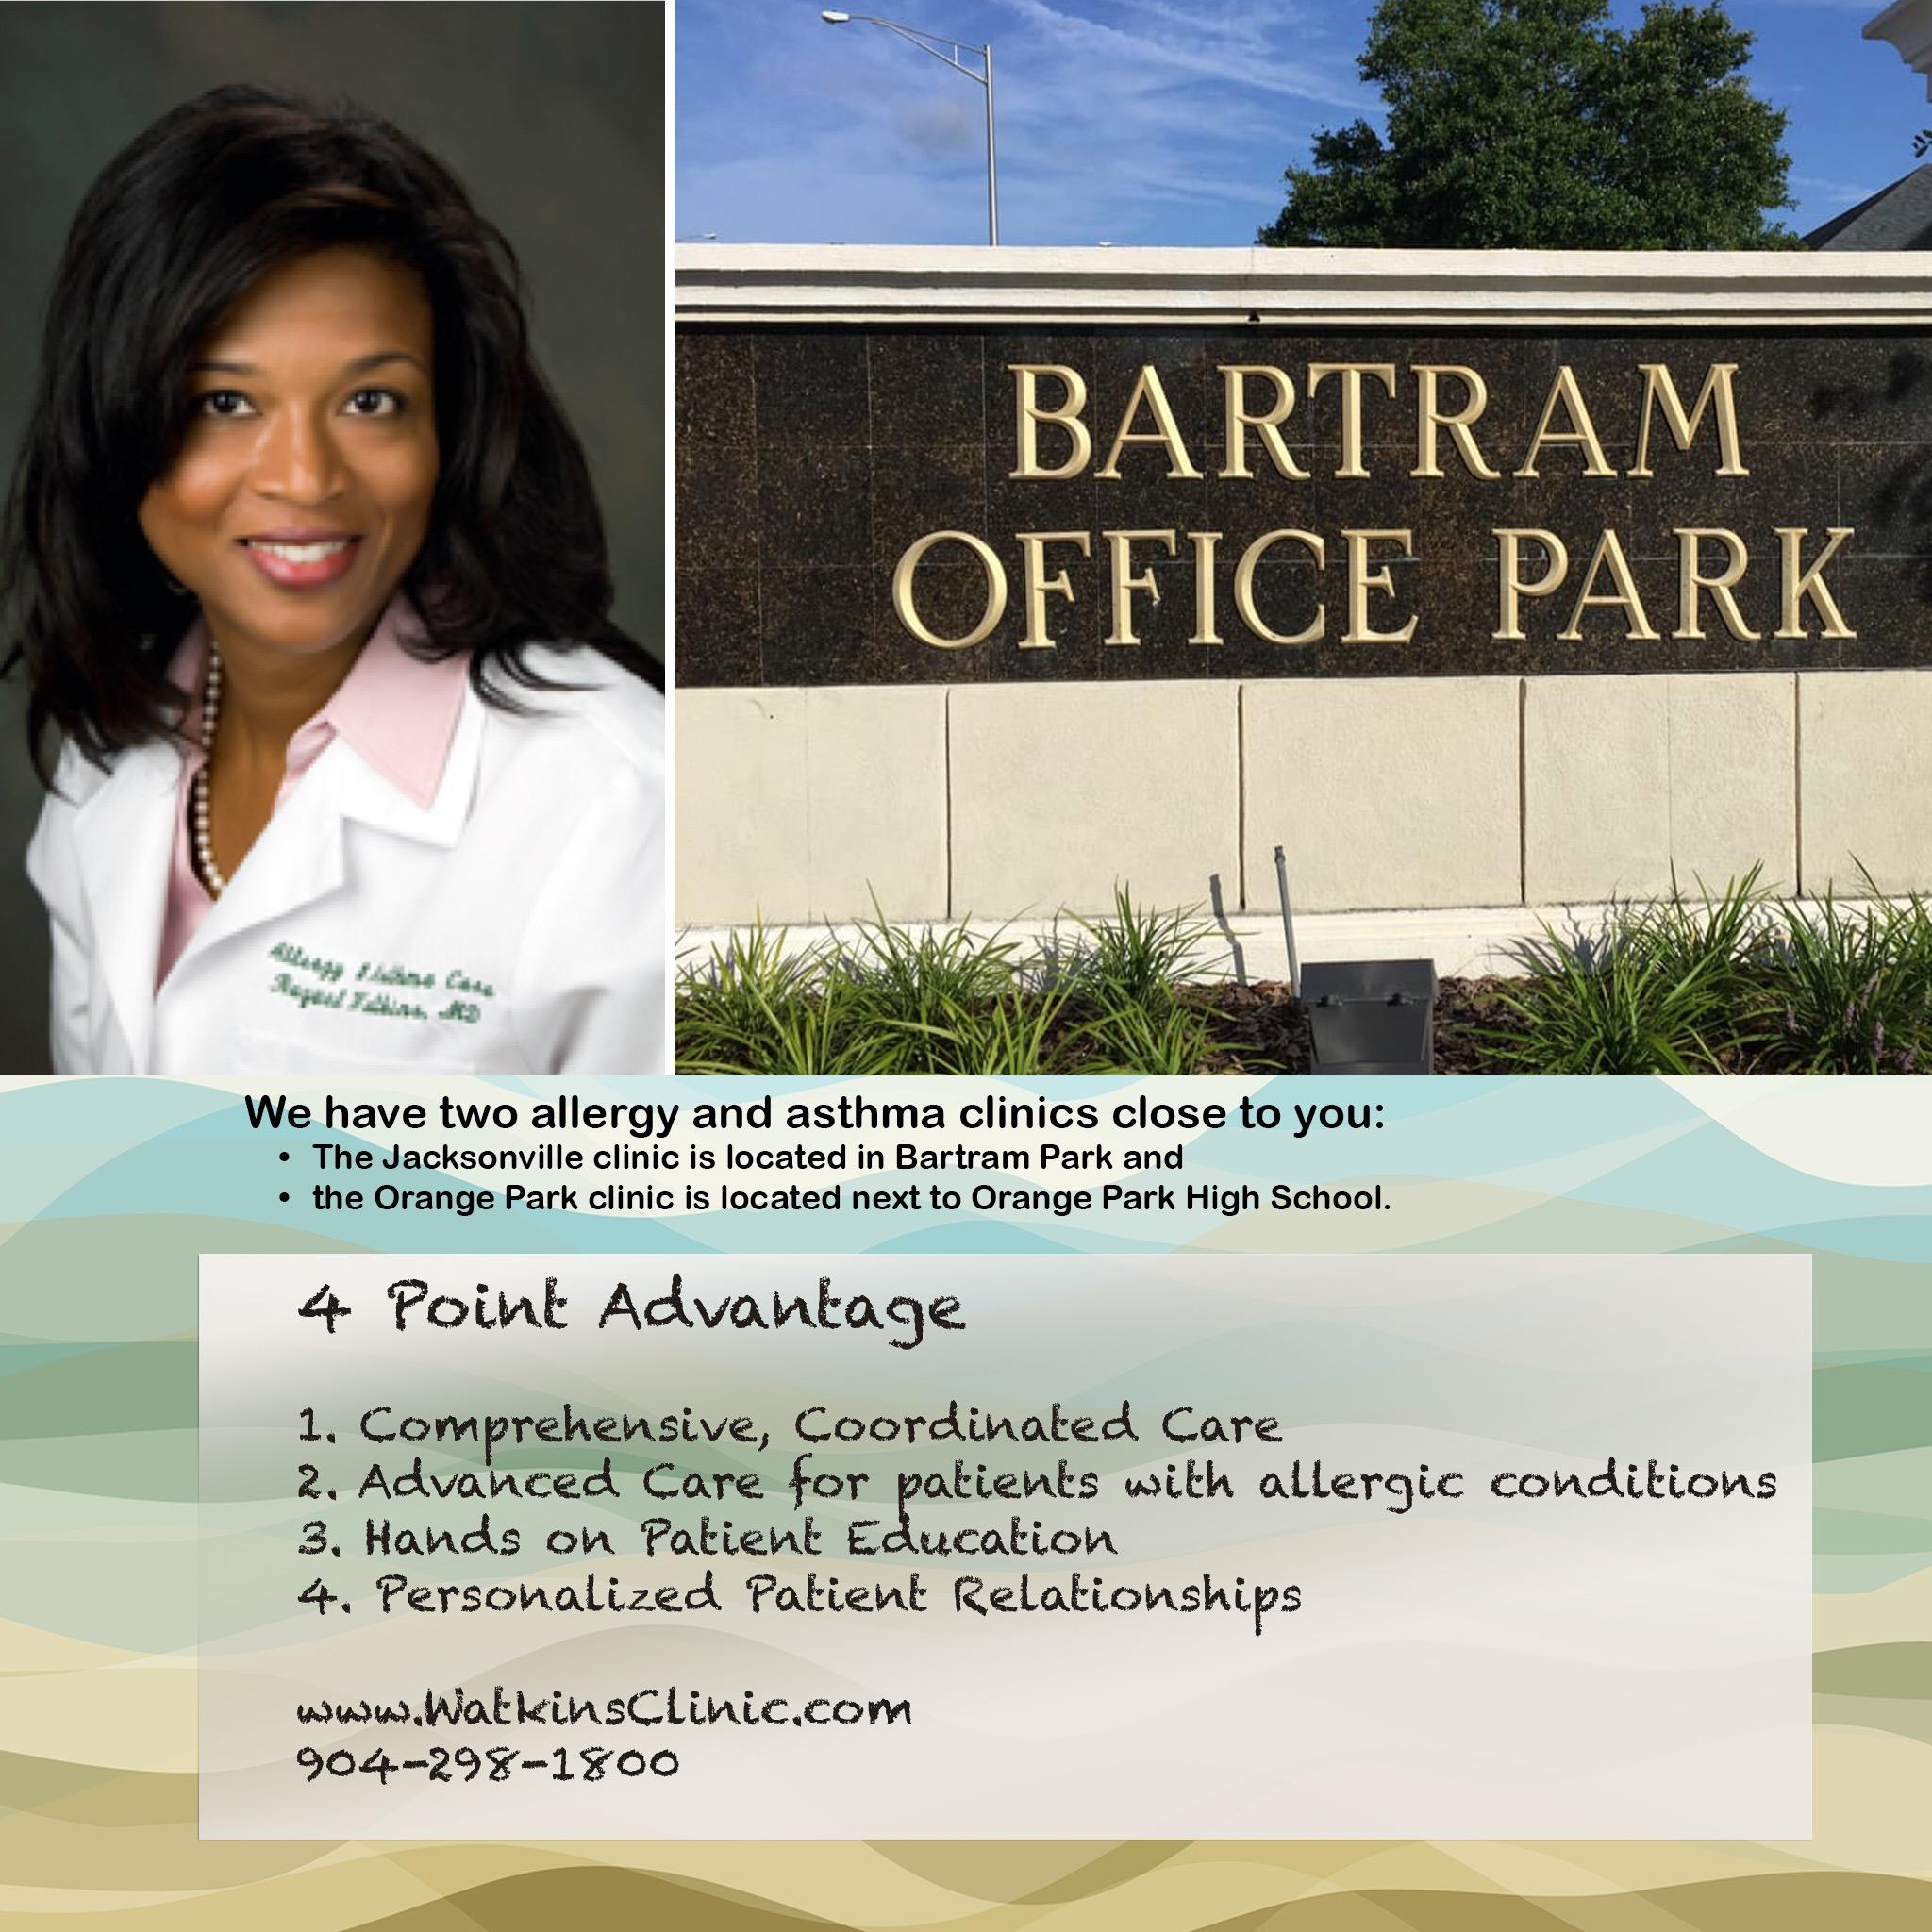 Watkins Allergy and Asthma Clinic Bartram Park Office image 0